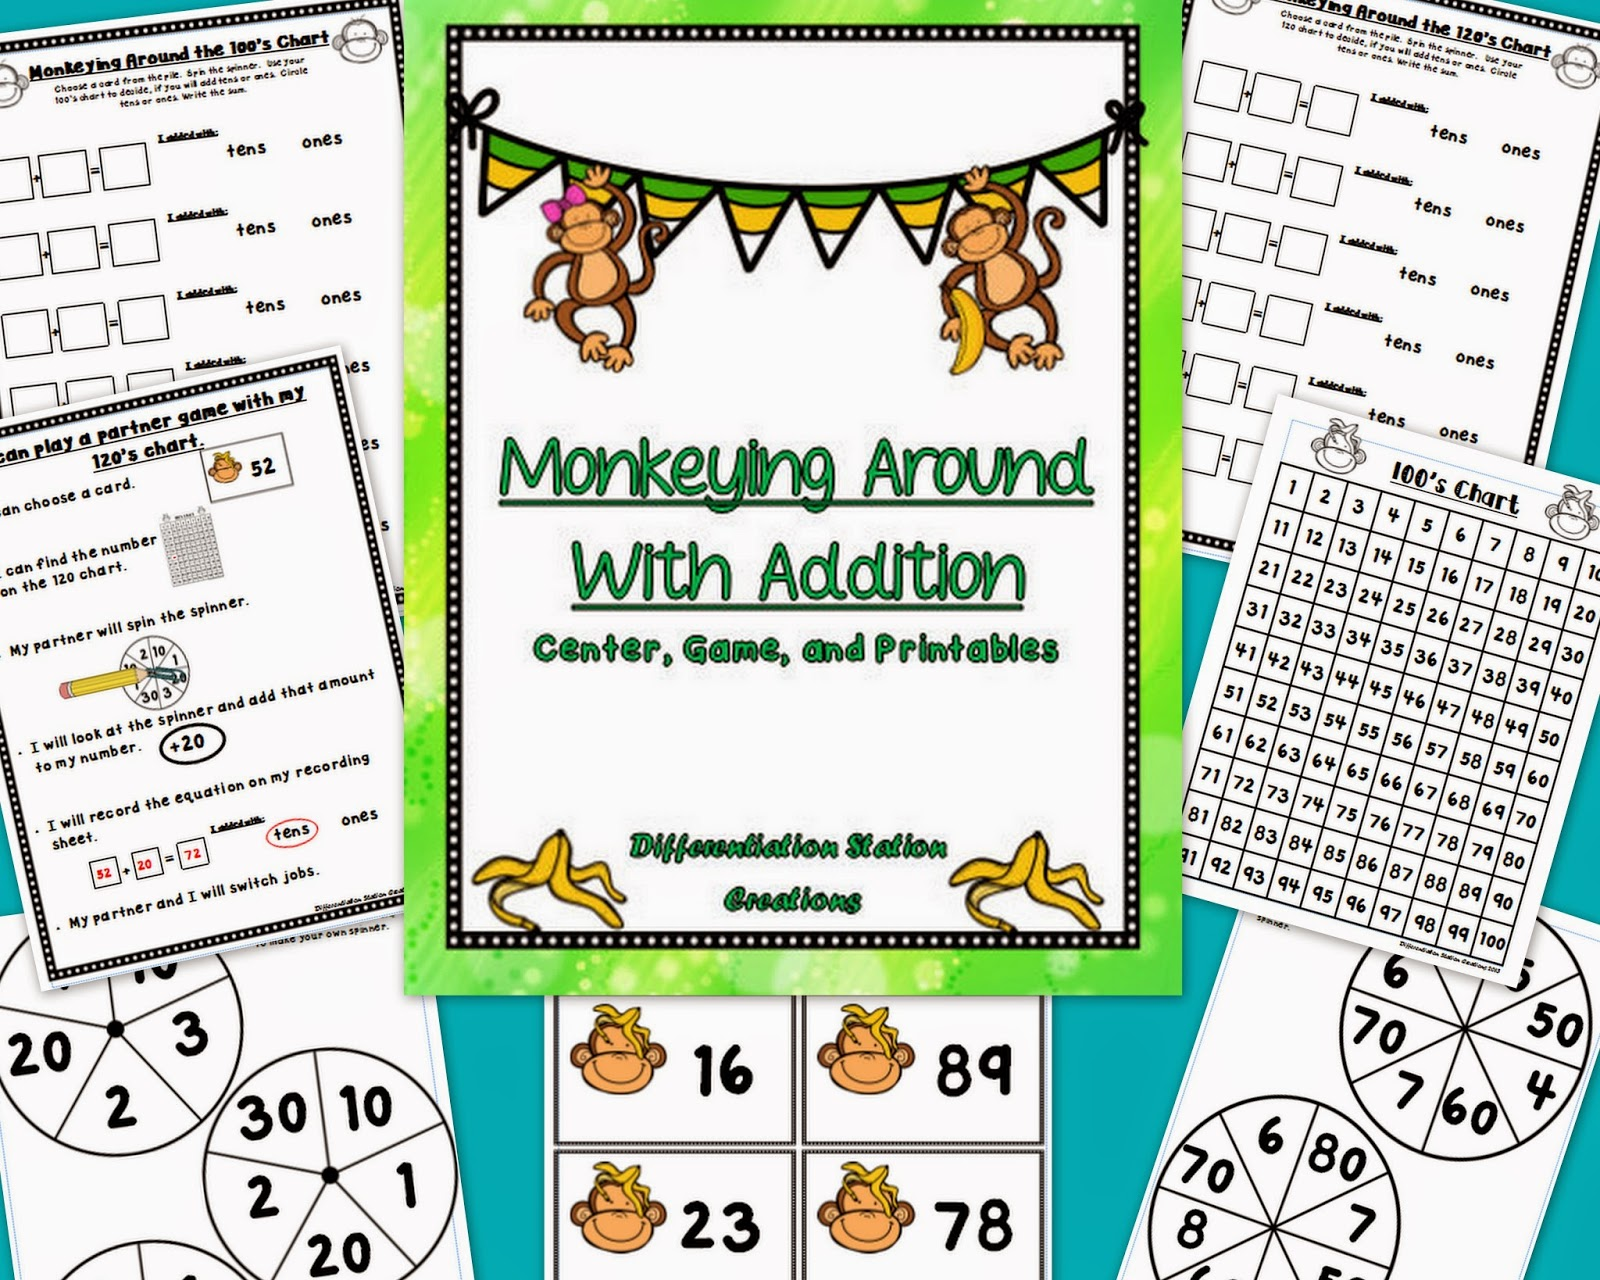 http://www.teacherspayteachers.com/Product/Monkeying-Around-With-Addition-Adding-Tens-and-Ones-1204934